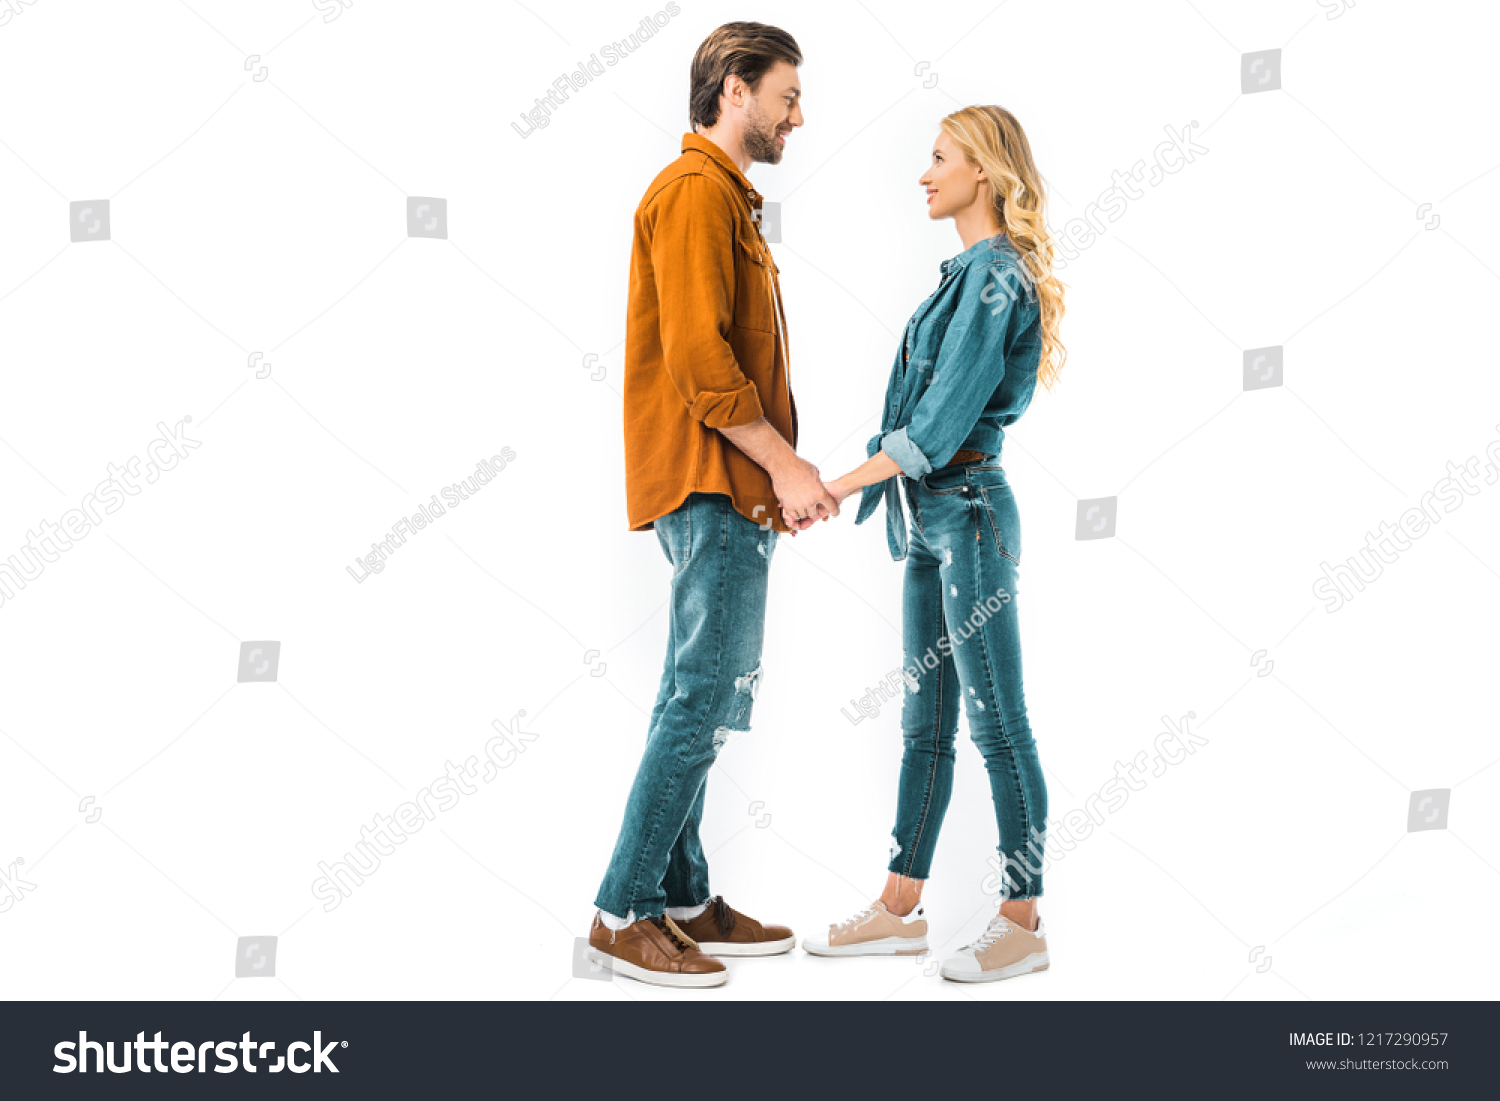 Side view of young couple holding hands and looking at each other isolated on white